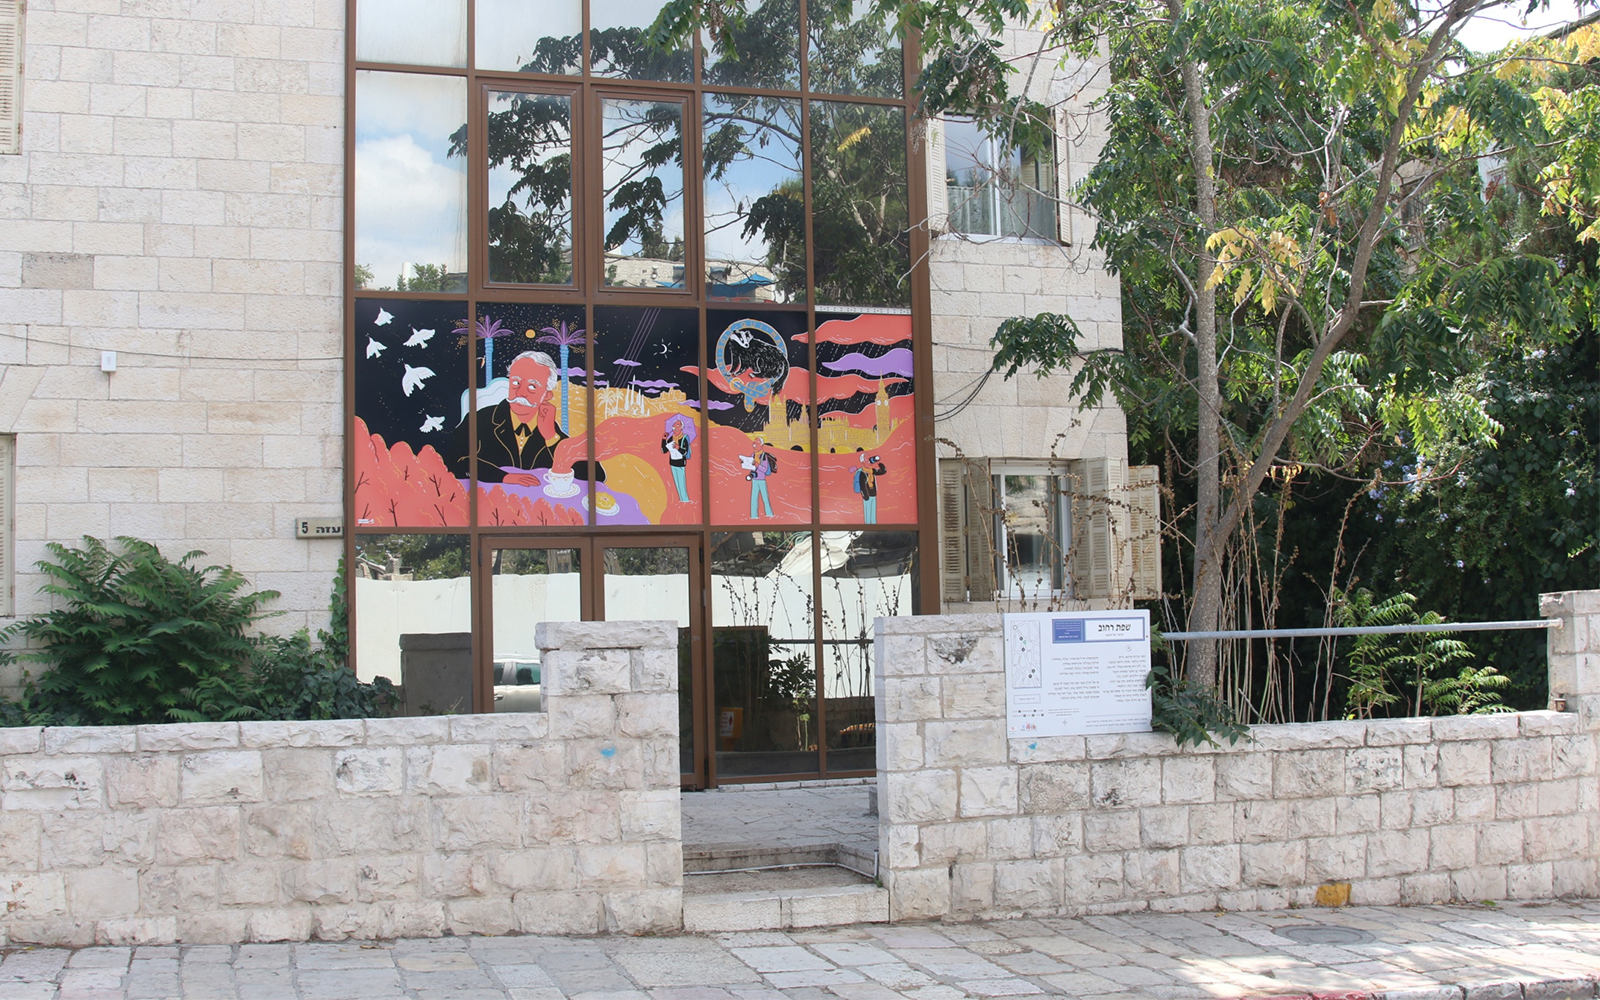 An illustration depicting Lord Balfour on Gaza street in Jerusalem. (Shmuel Bar-Am)